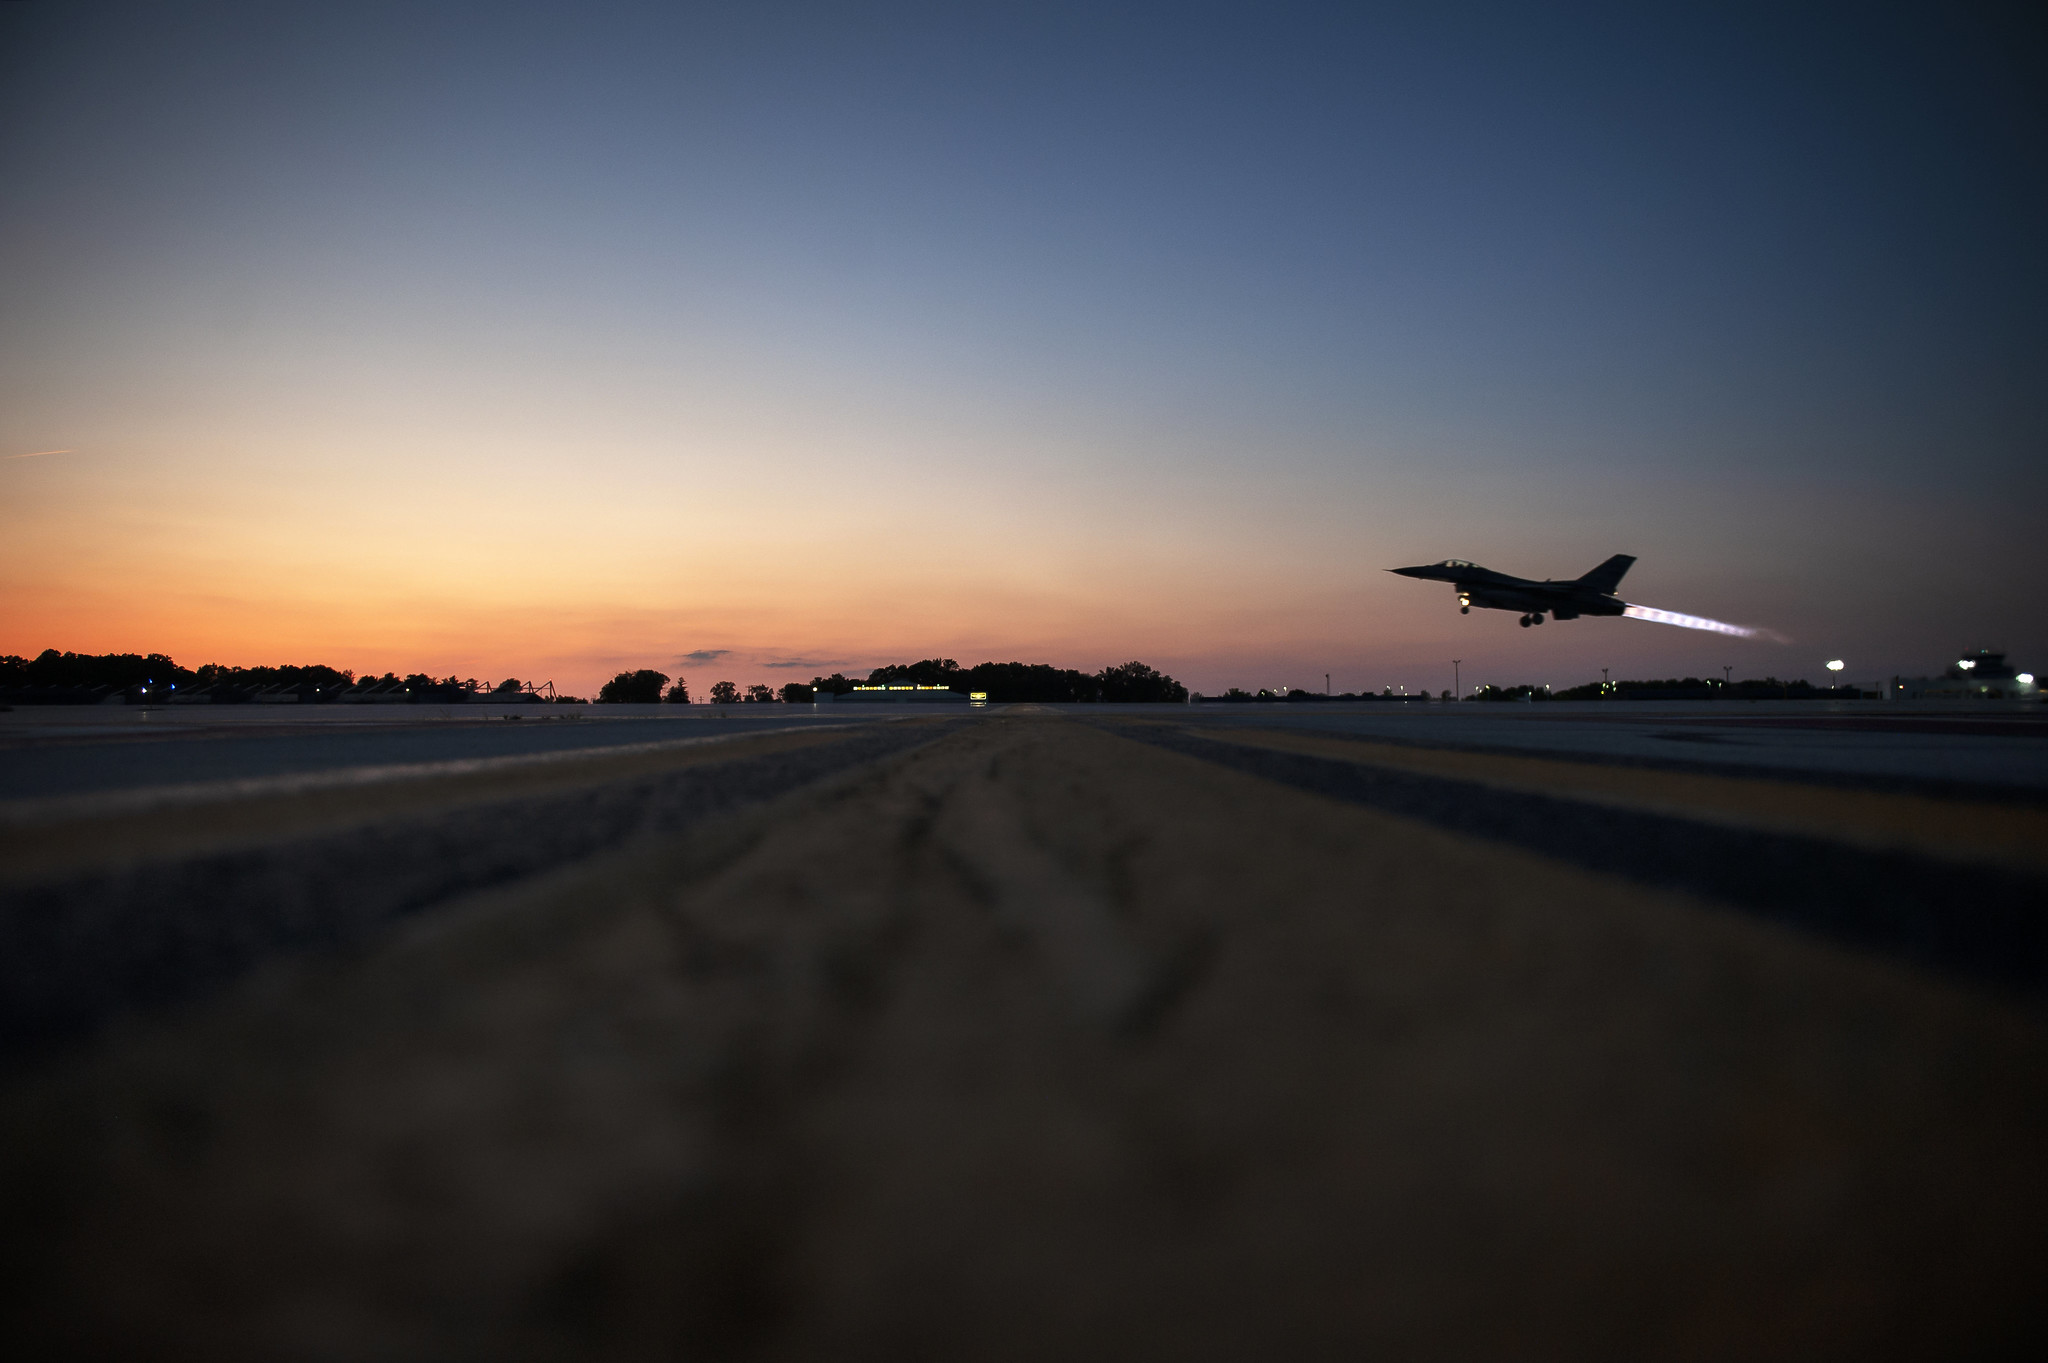 An F-16 Fighting Falcon, assigned to the Ohio National Guard's 180th Fighter Wing, takes off for a nighttime training mission, June 16, 2020. (Senior Master Sgt. Beth Holliker/Air National Guard)